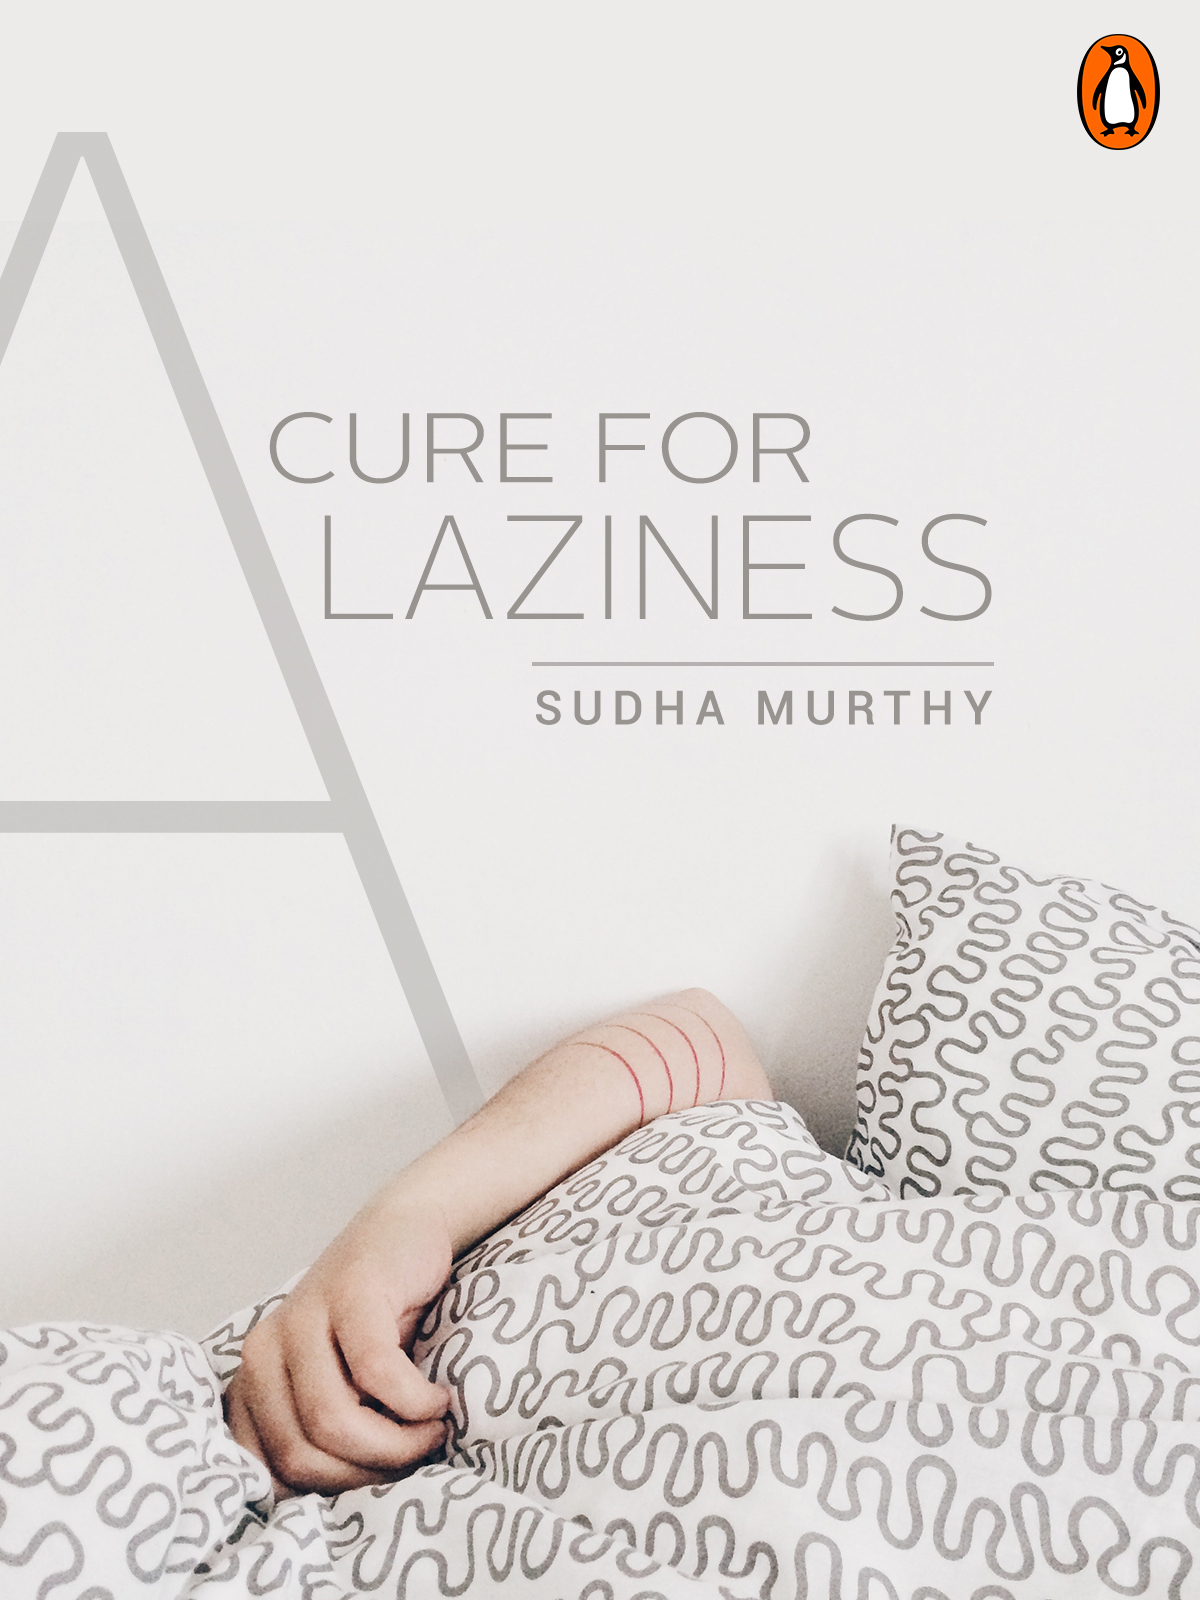 A Cure For Laziness